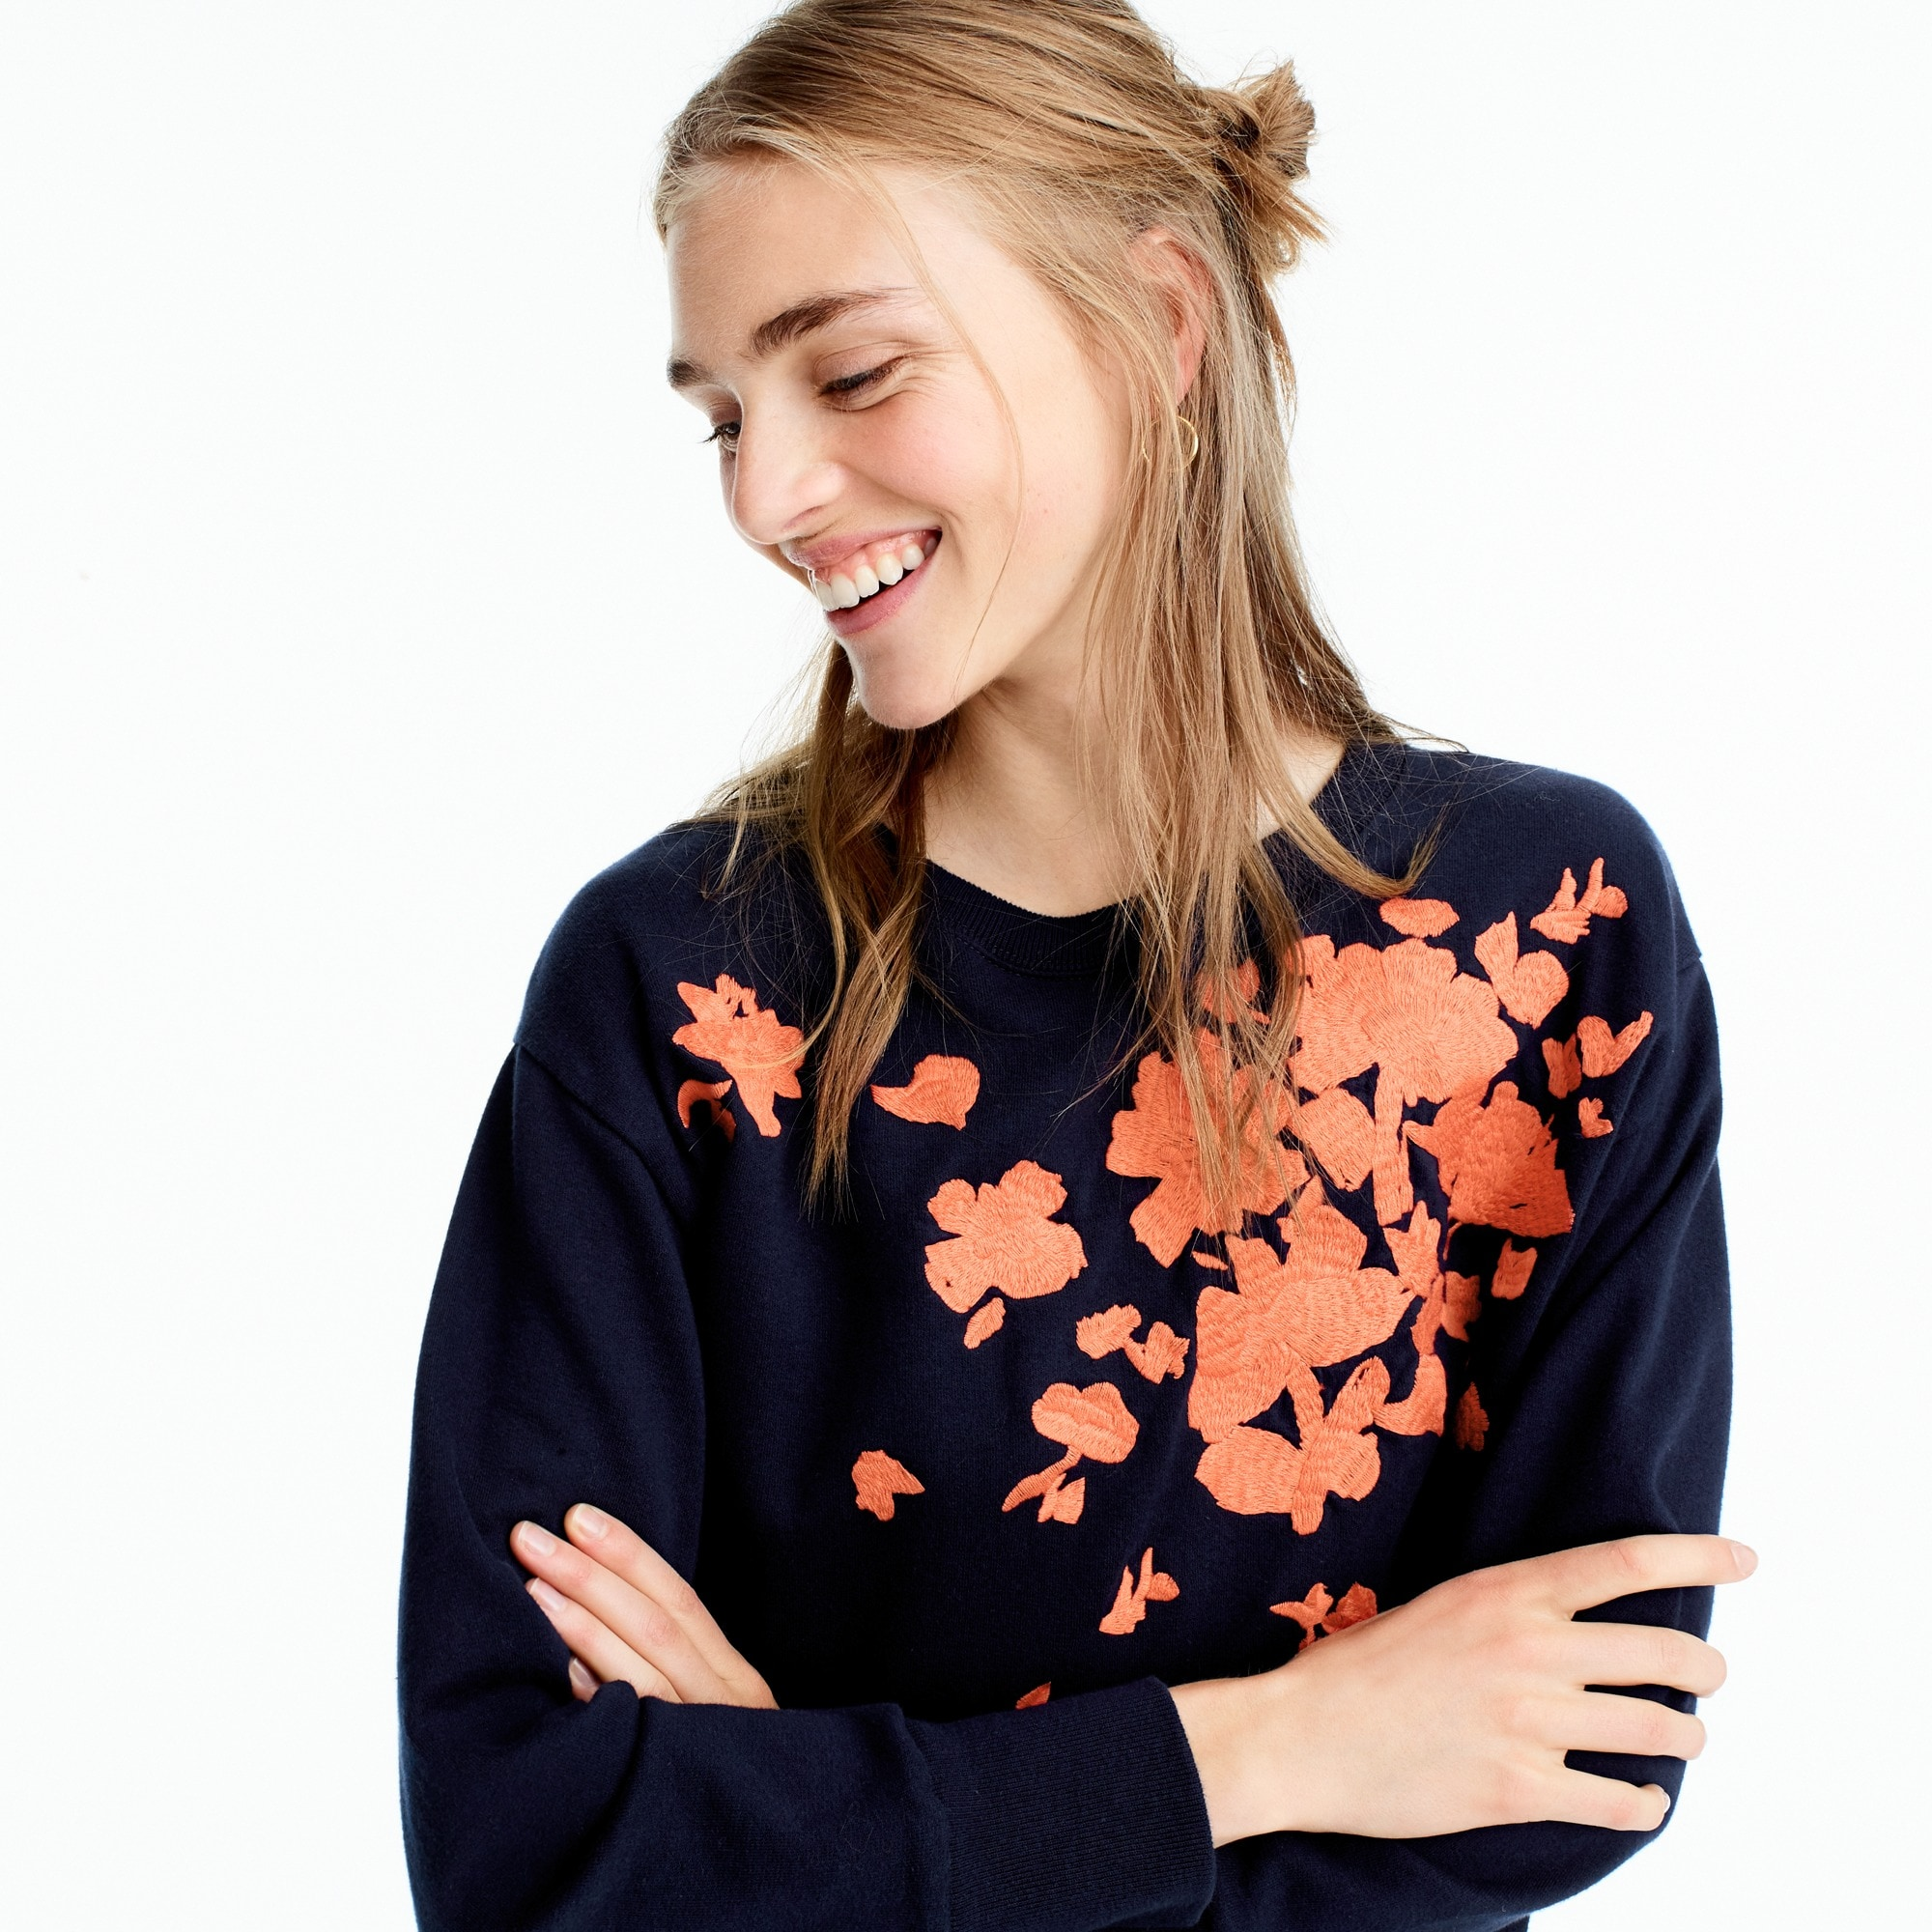 Embroidered flower sweatshirt women sweatshirts & sweatpants c